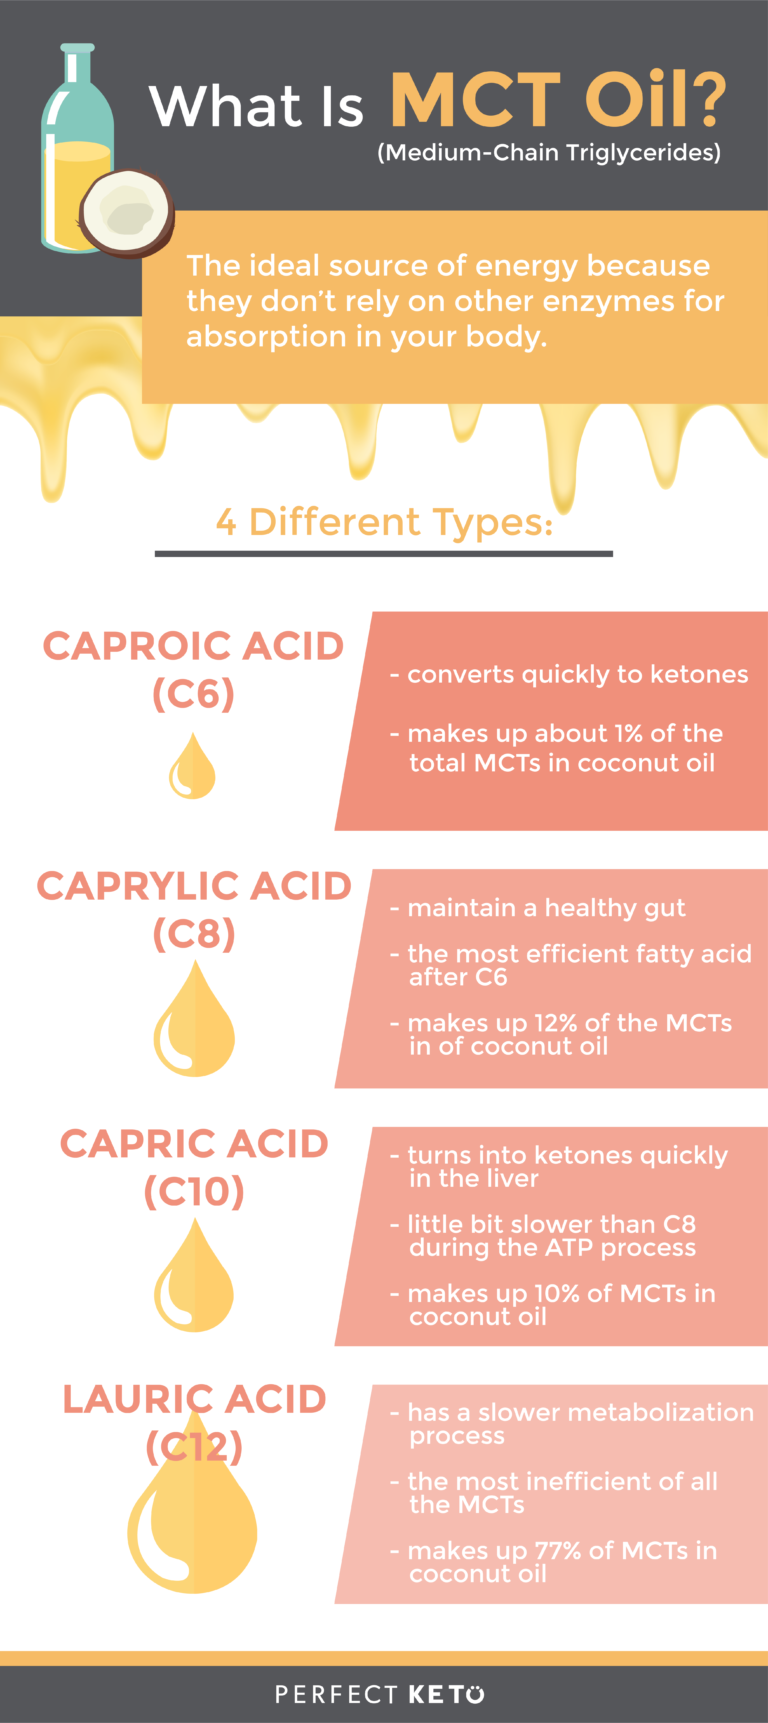 mct oil benefits on ketogenic diet